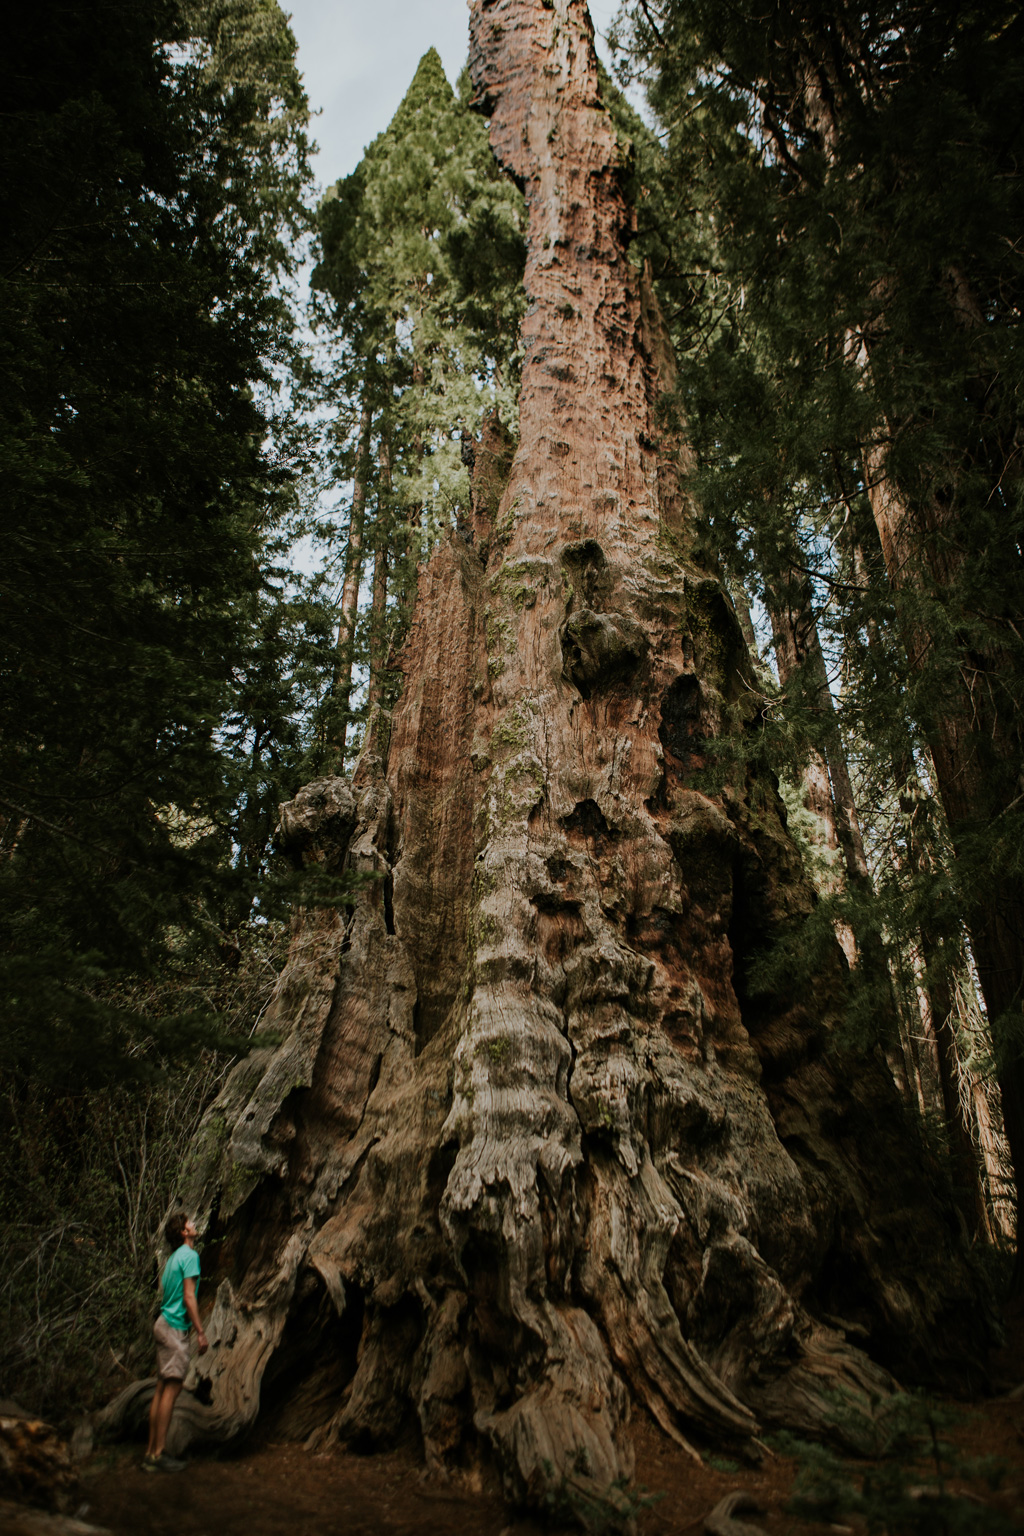 CindyGiovagnoli_California_Sequoia_Kings_Canyon_National_Park_trees_travel_road_trip-011.jpg